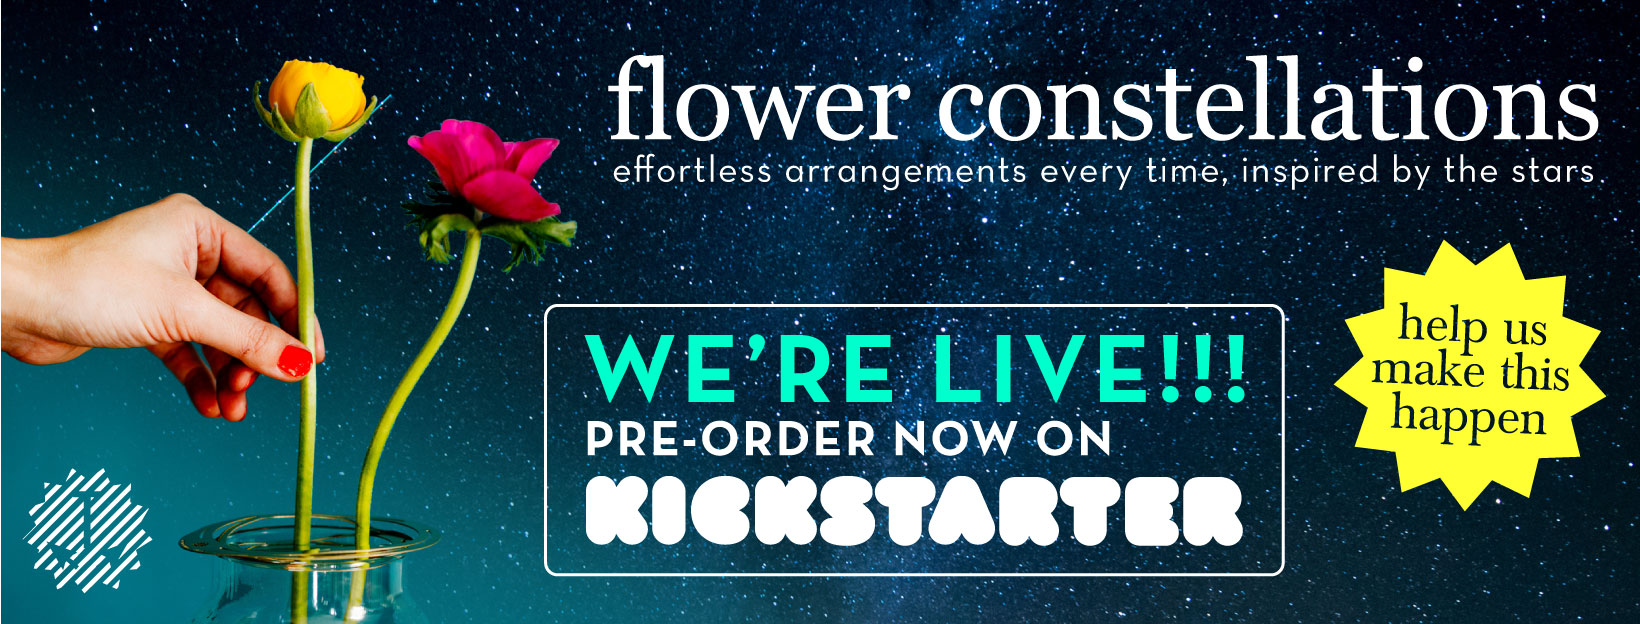 Flower Constellations / Effortless arrangements, inspired by the stars - pre-order now on Kickstarter